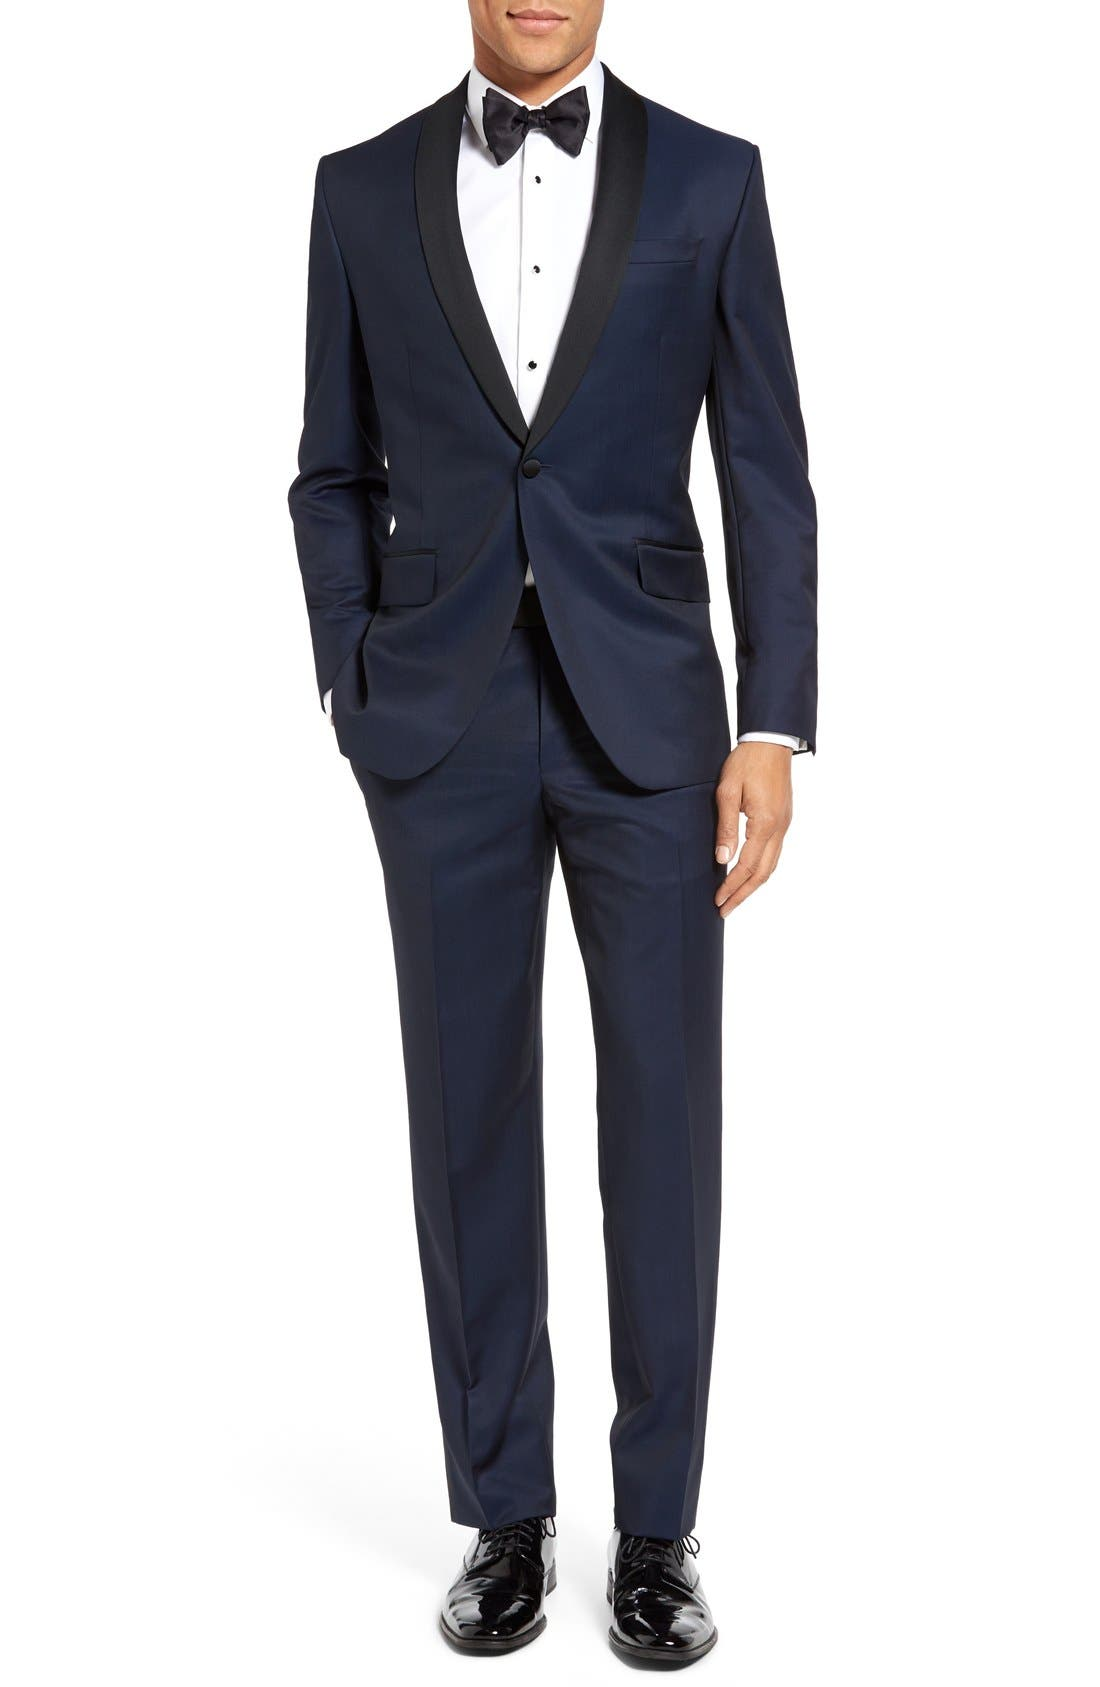 TED BAKER LONDON, Josh Trim Fit Navy Shawl Lapel Tuxedo, Main thumbnail 1, color, NAVY BLUE